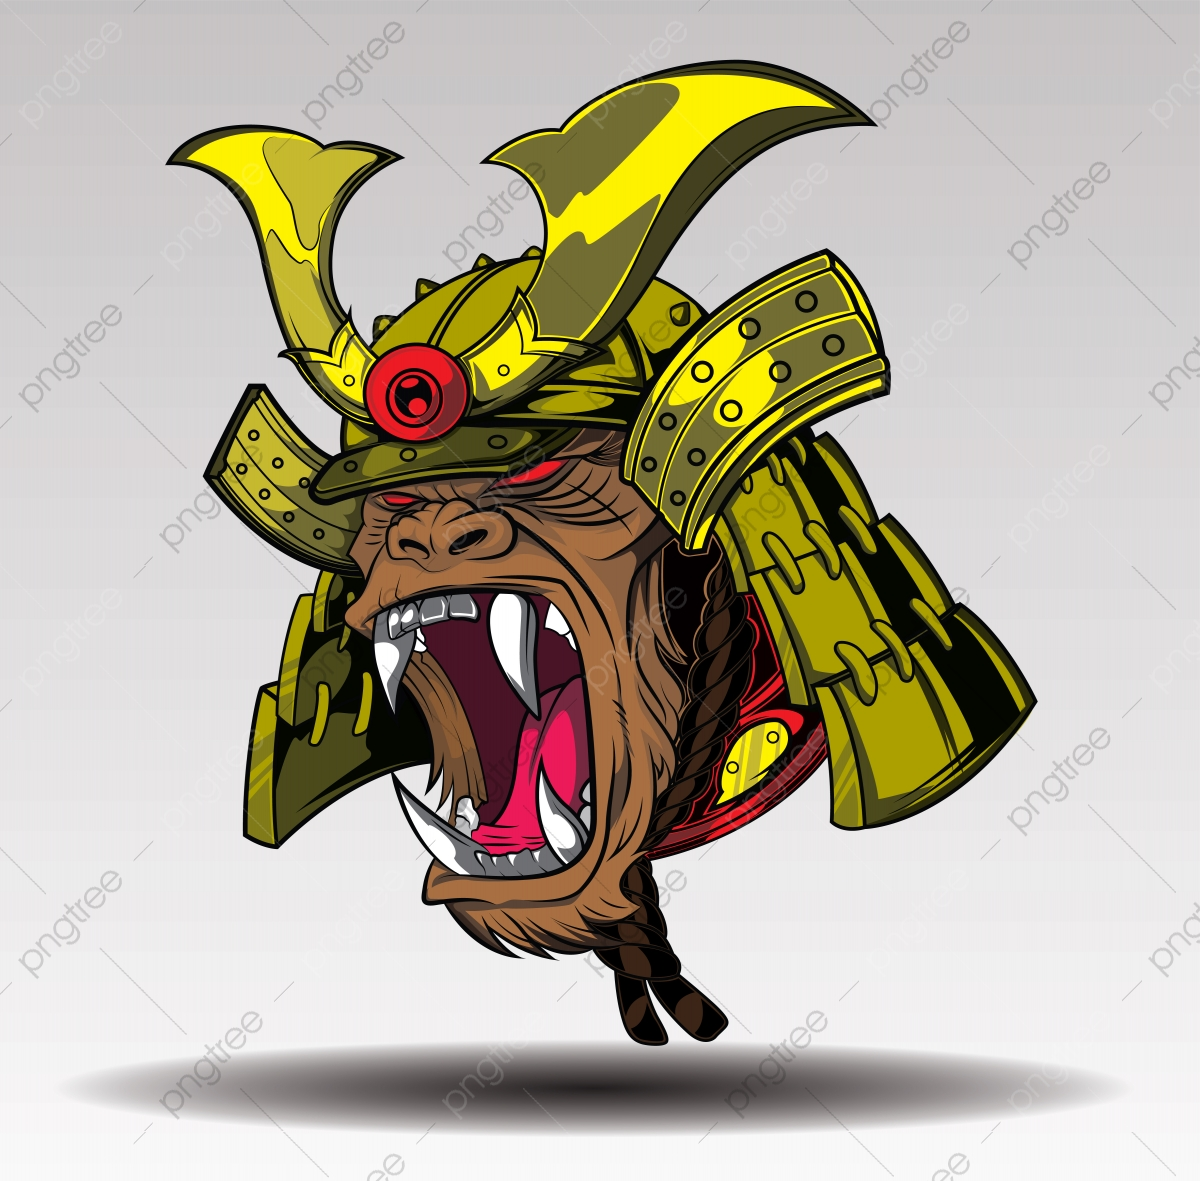 Fierce Gorilla Samurai Tattoo Concept Ninja Clipart Samurai Abstract Png And Vector With Transparent Background For Free Download